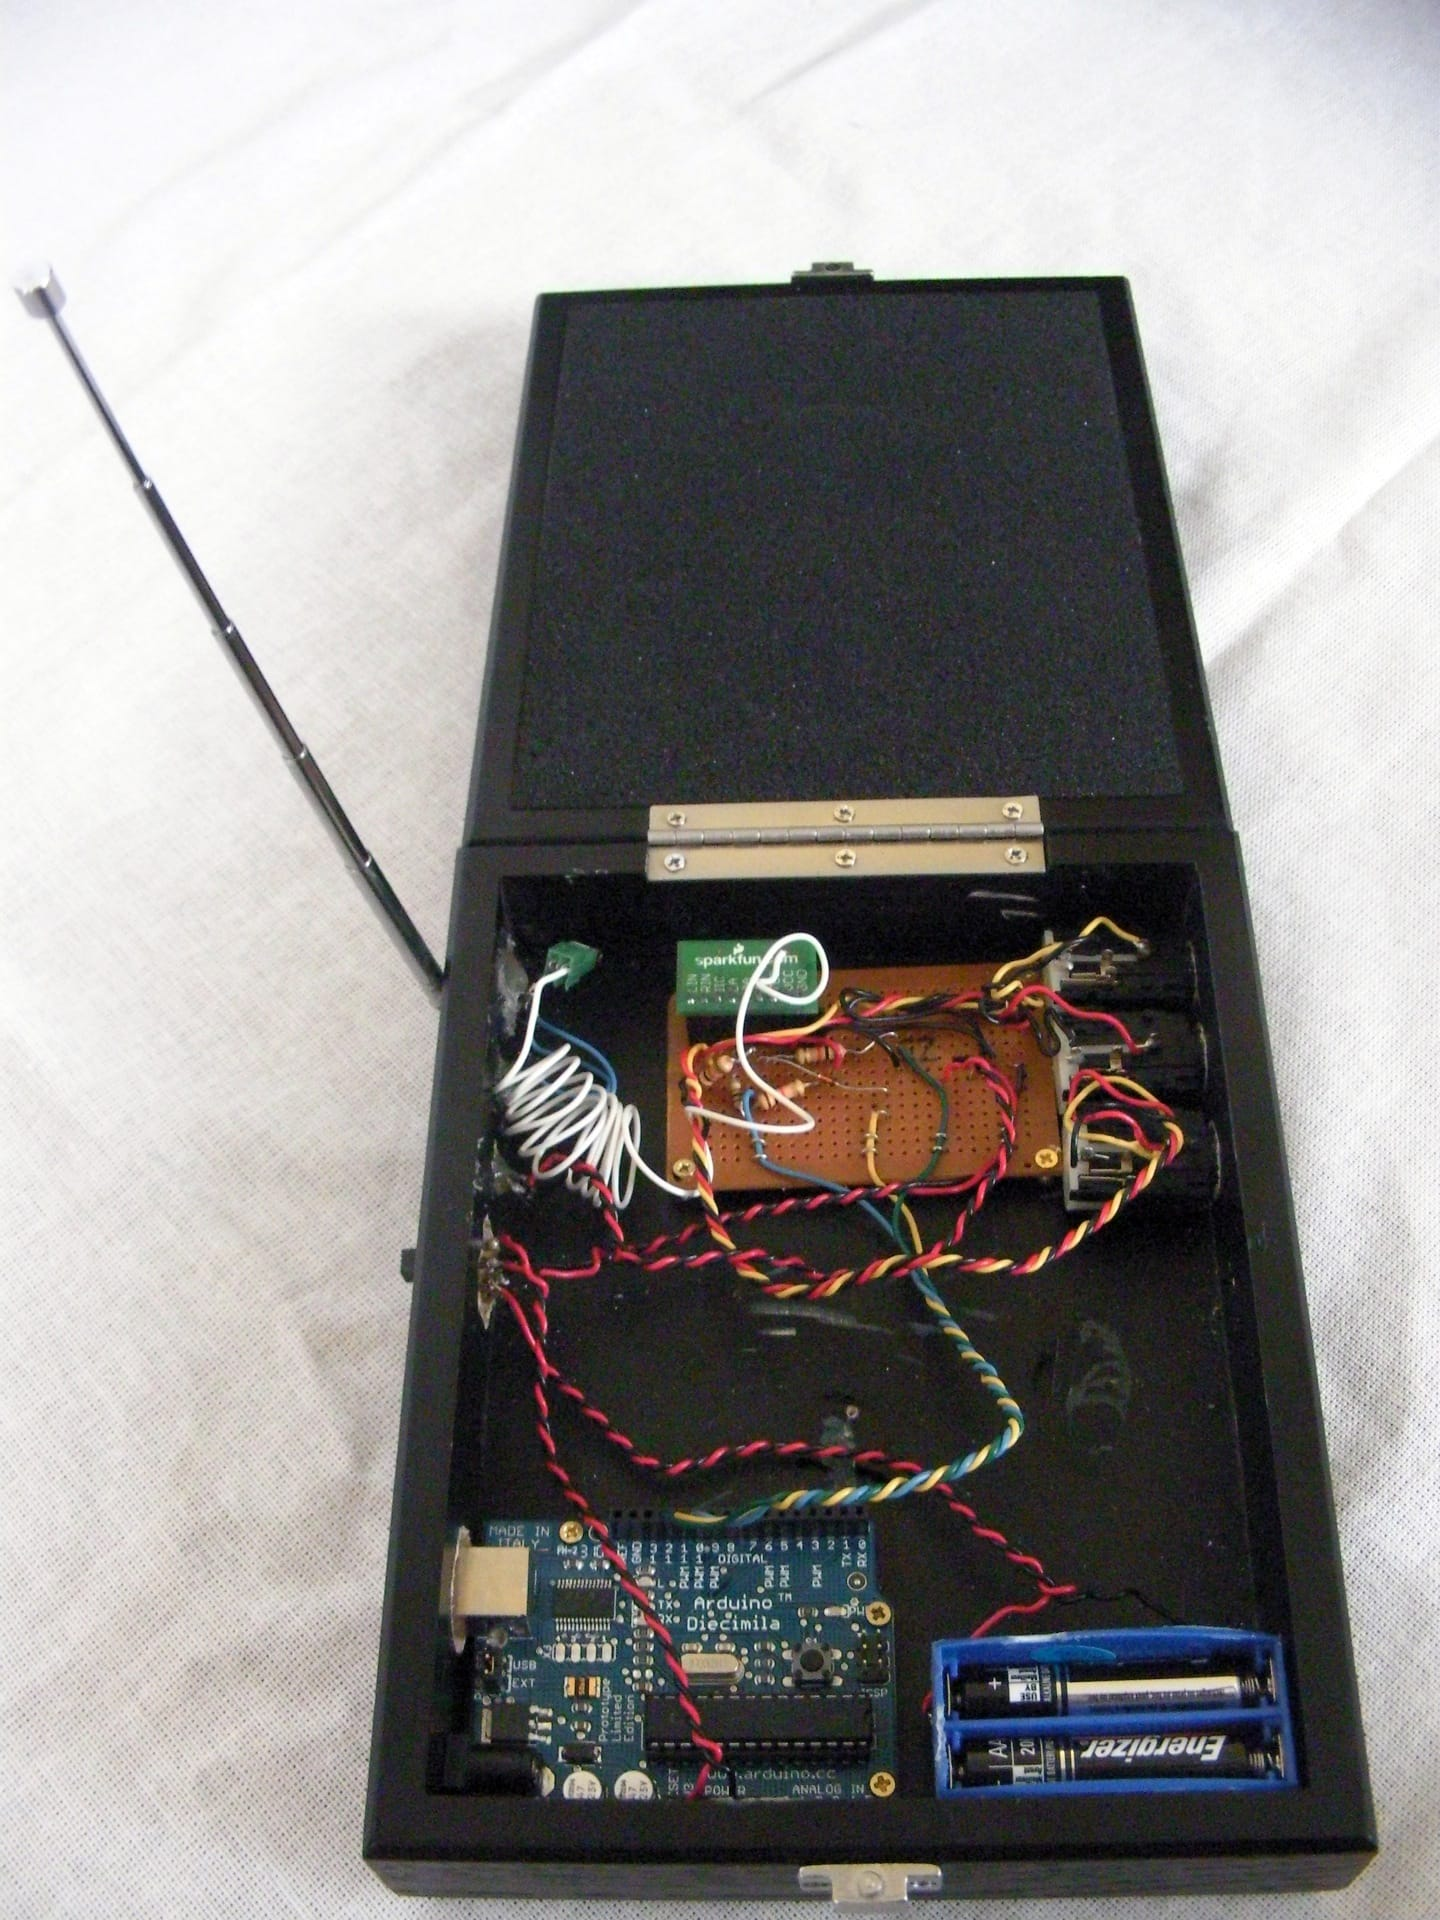 Have robot dog, will travel – FM transmitter v1 box _185_1920px